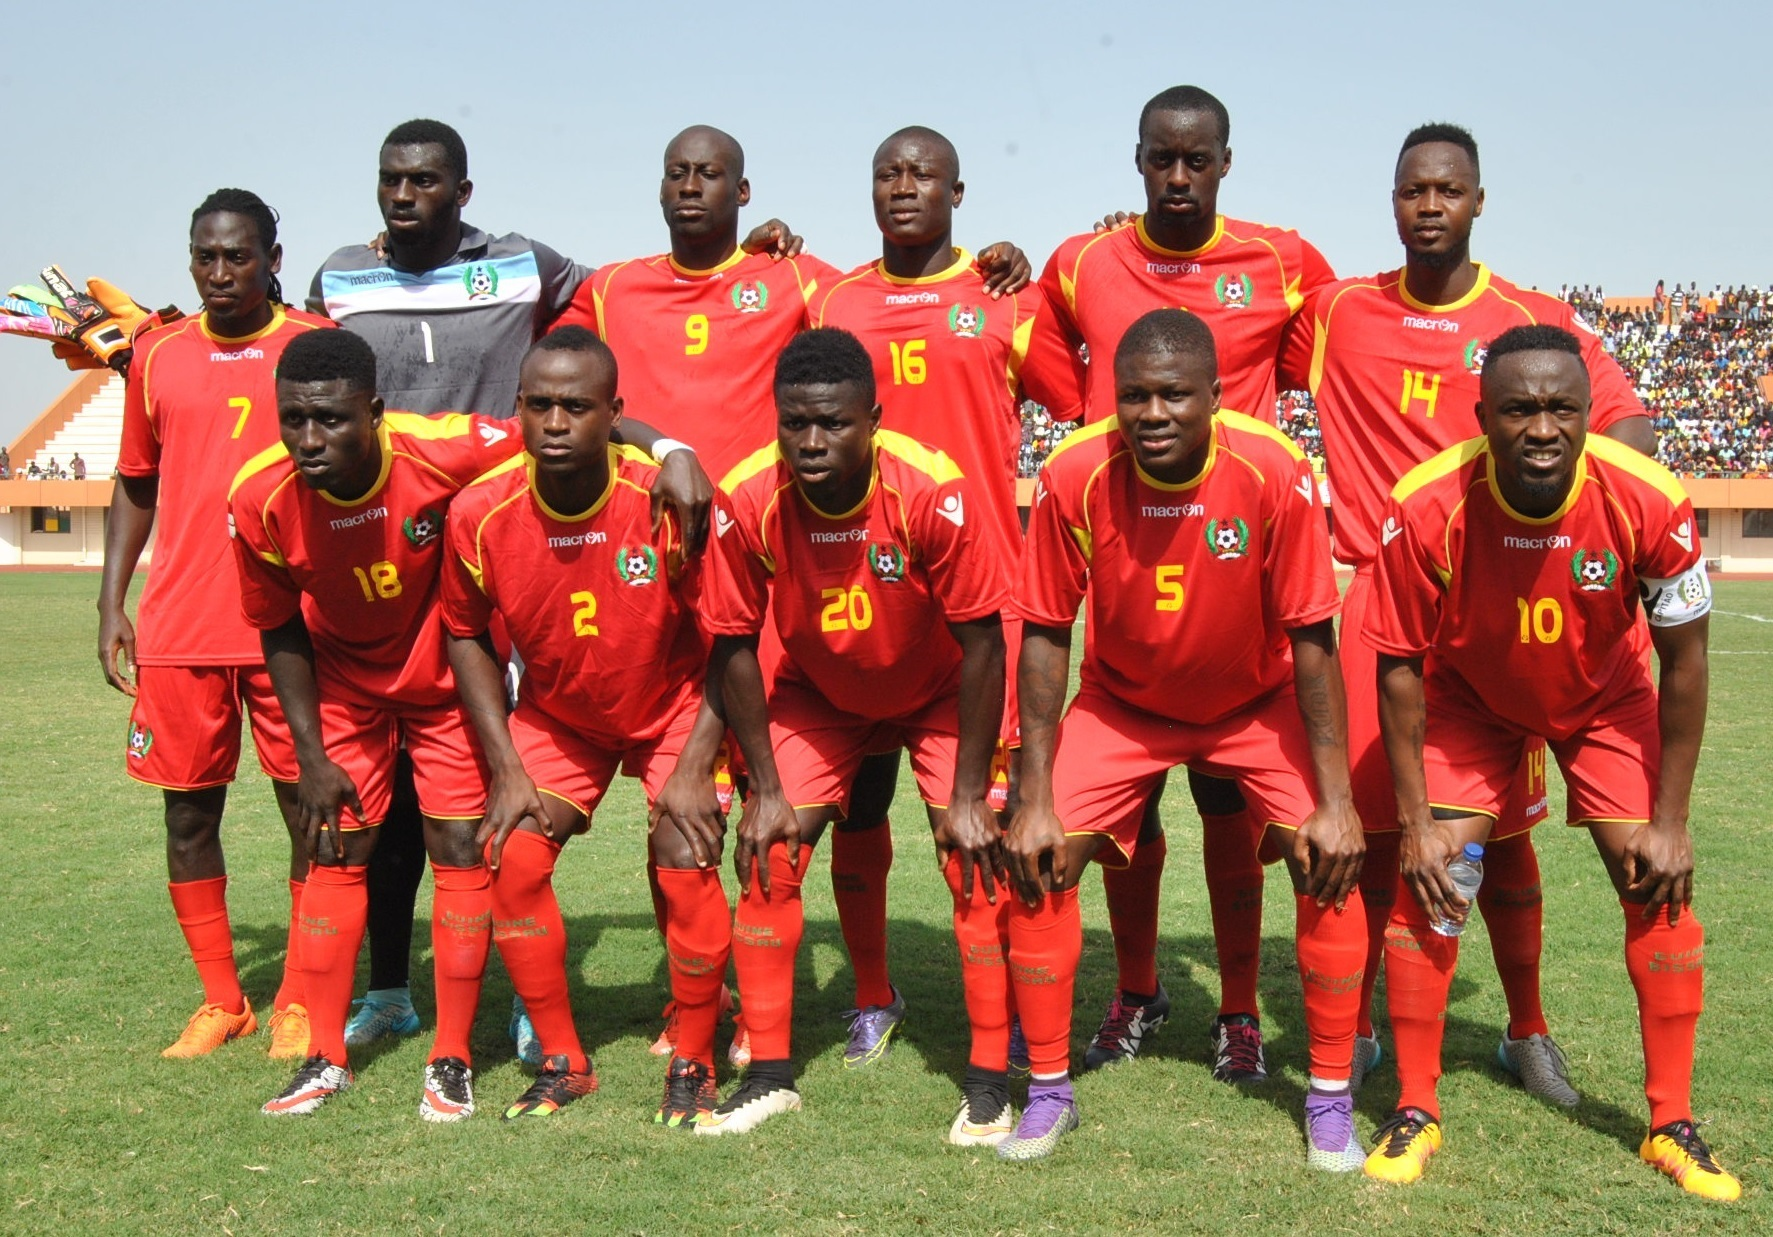 Guinea-Bissau-2015-16-macron-home-kit-red-red-red-line-up.jpg